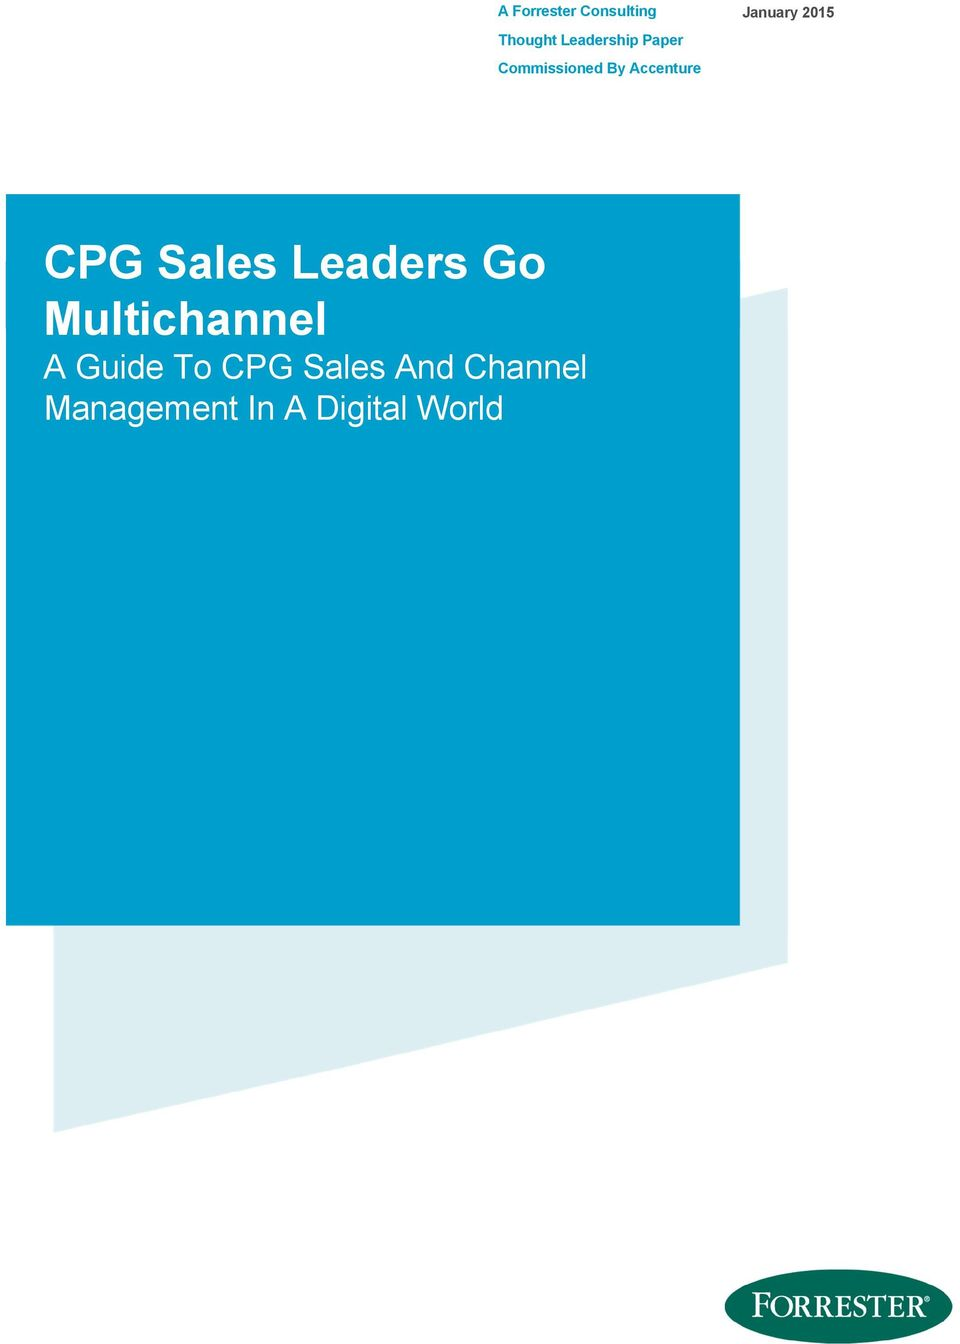 CPG Sales Leaders Go Multichannel A Guide To